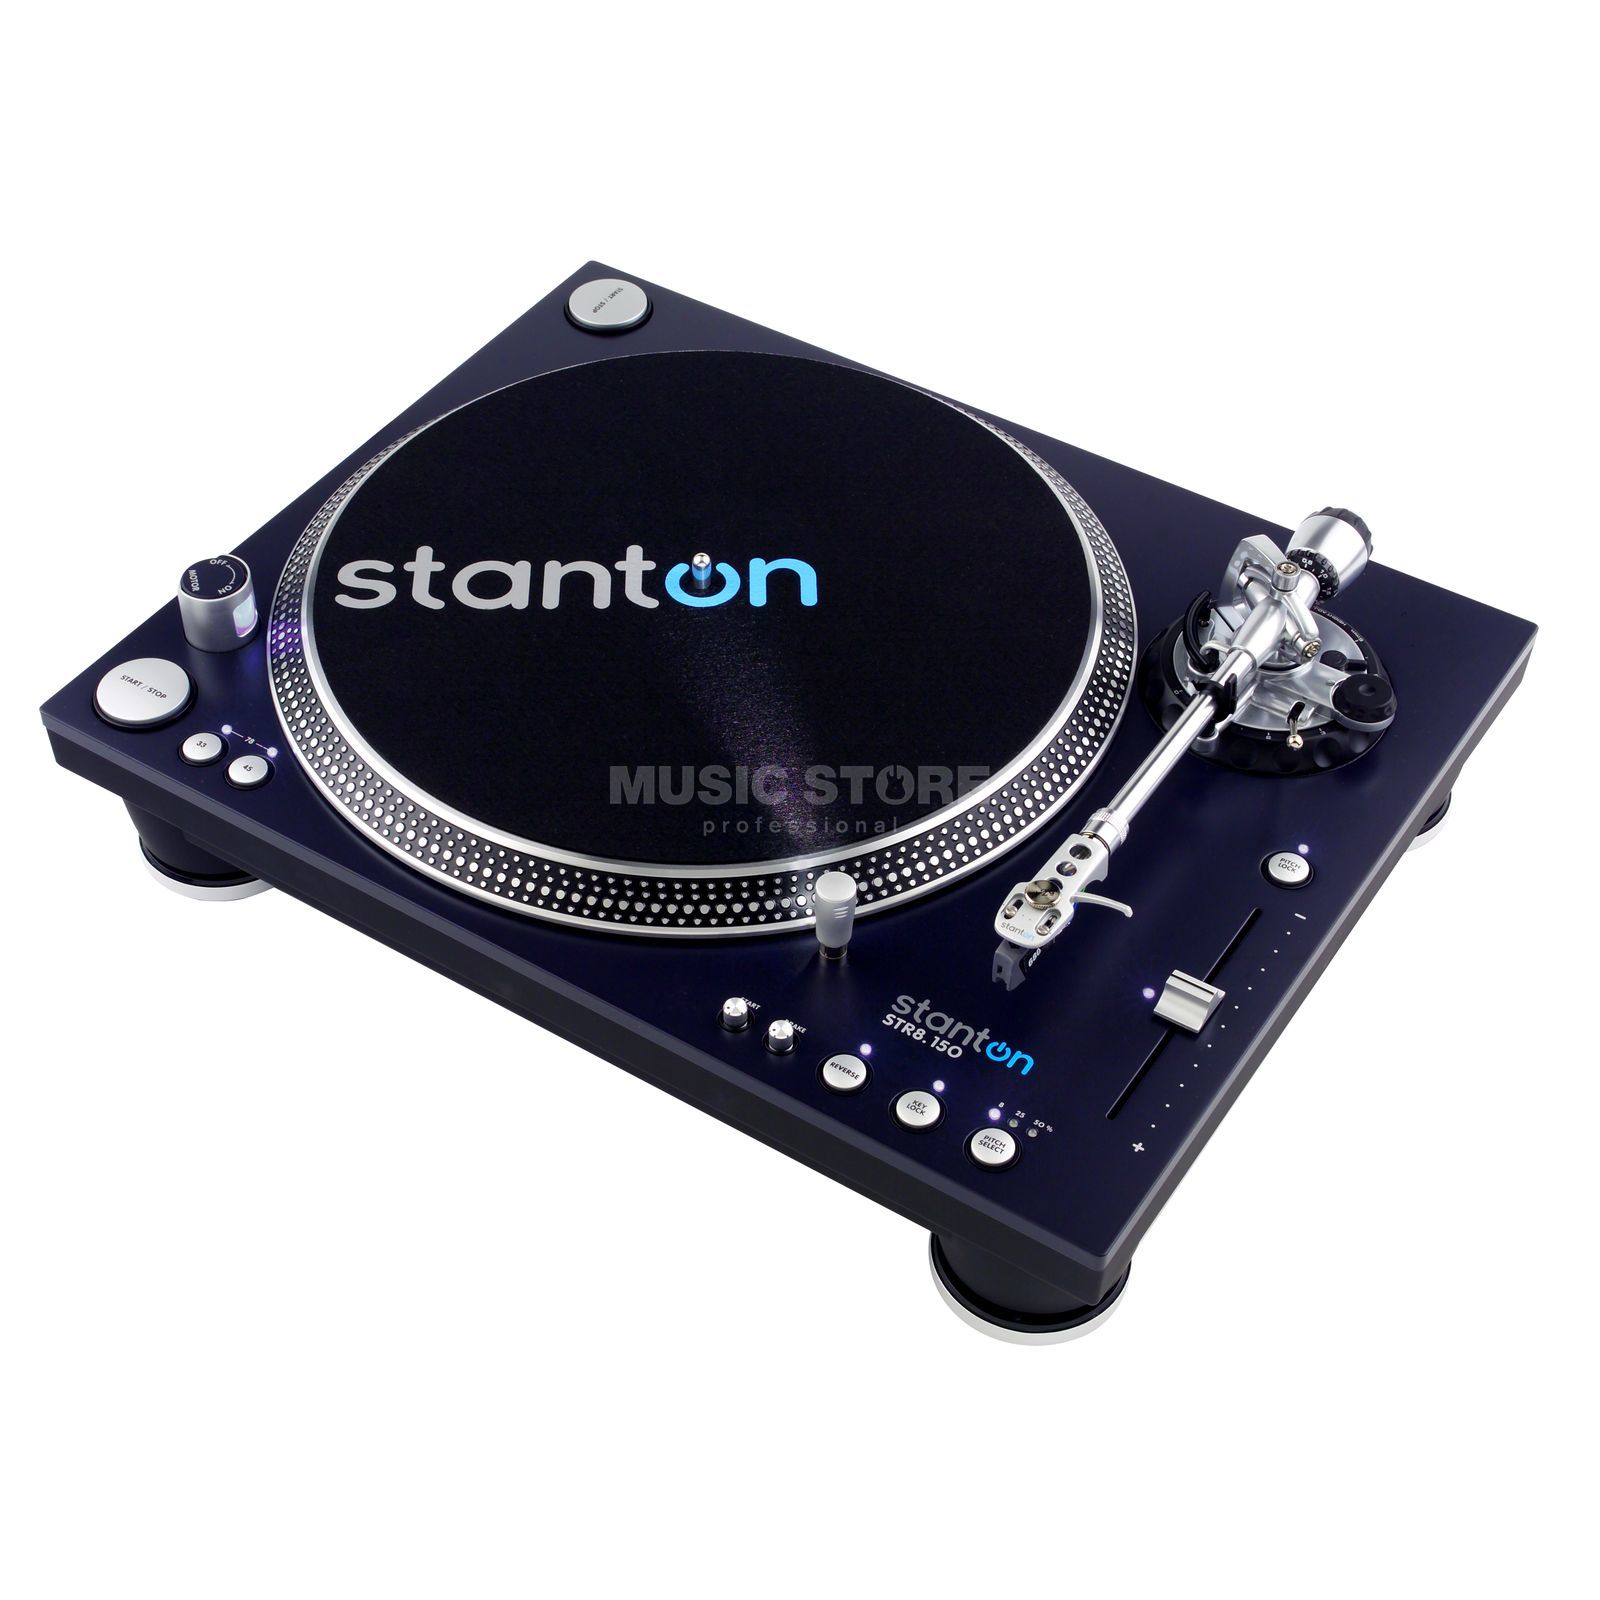 Stanton STR8-150 High Torque DJ Turntable Produktbillede